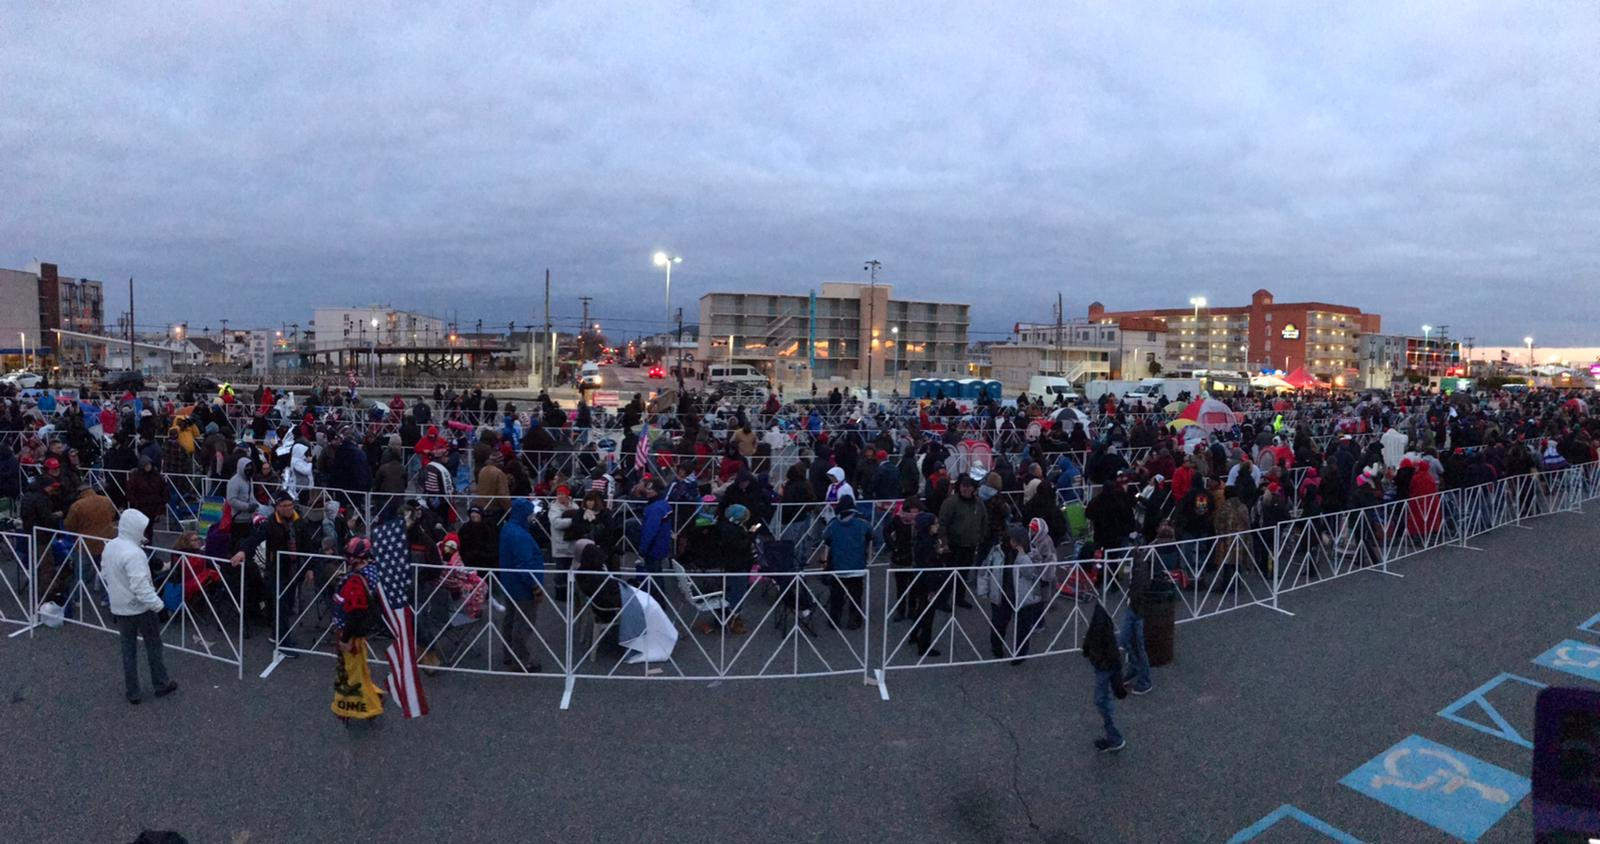 Thousands in line for President Donald Trump's rally in Wildwood